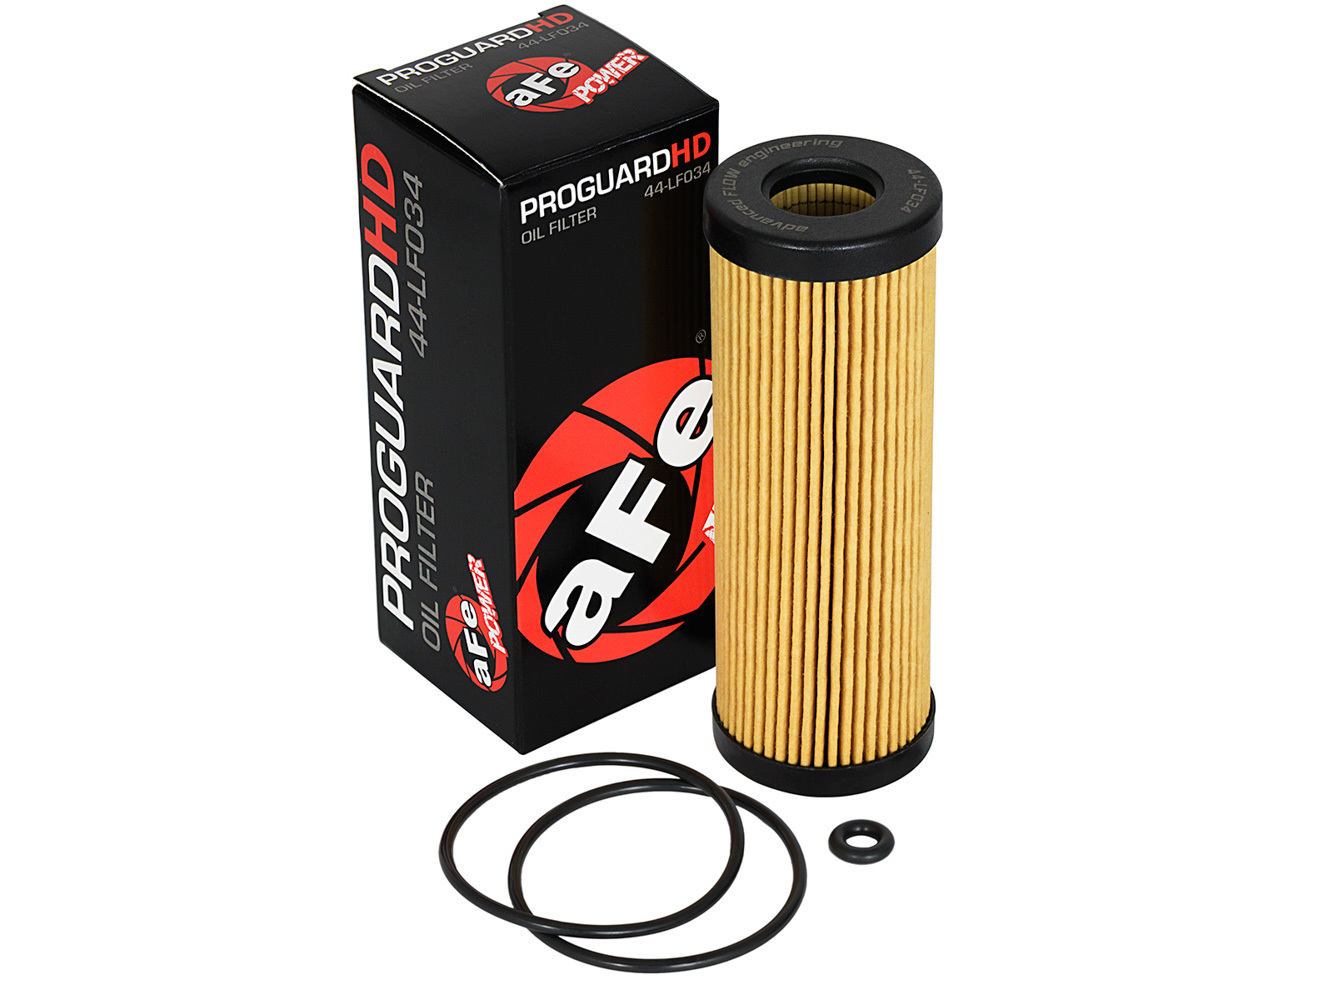 Afe Power Pro GUARD HD Oil Filter